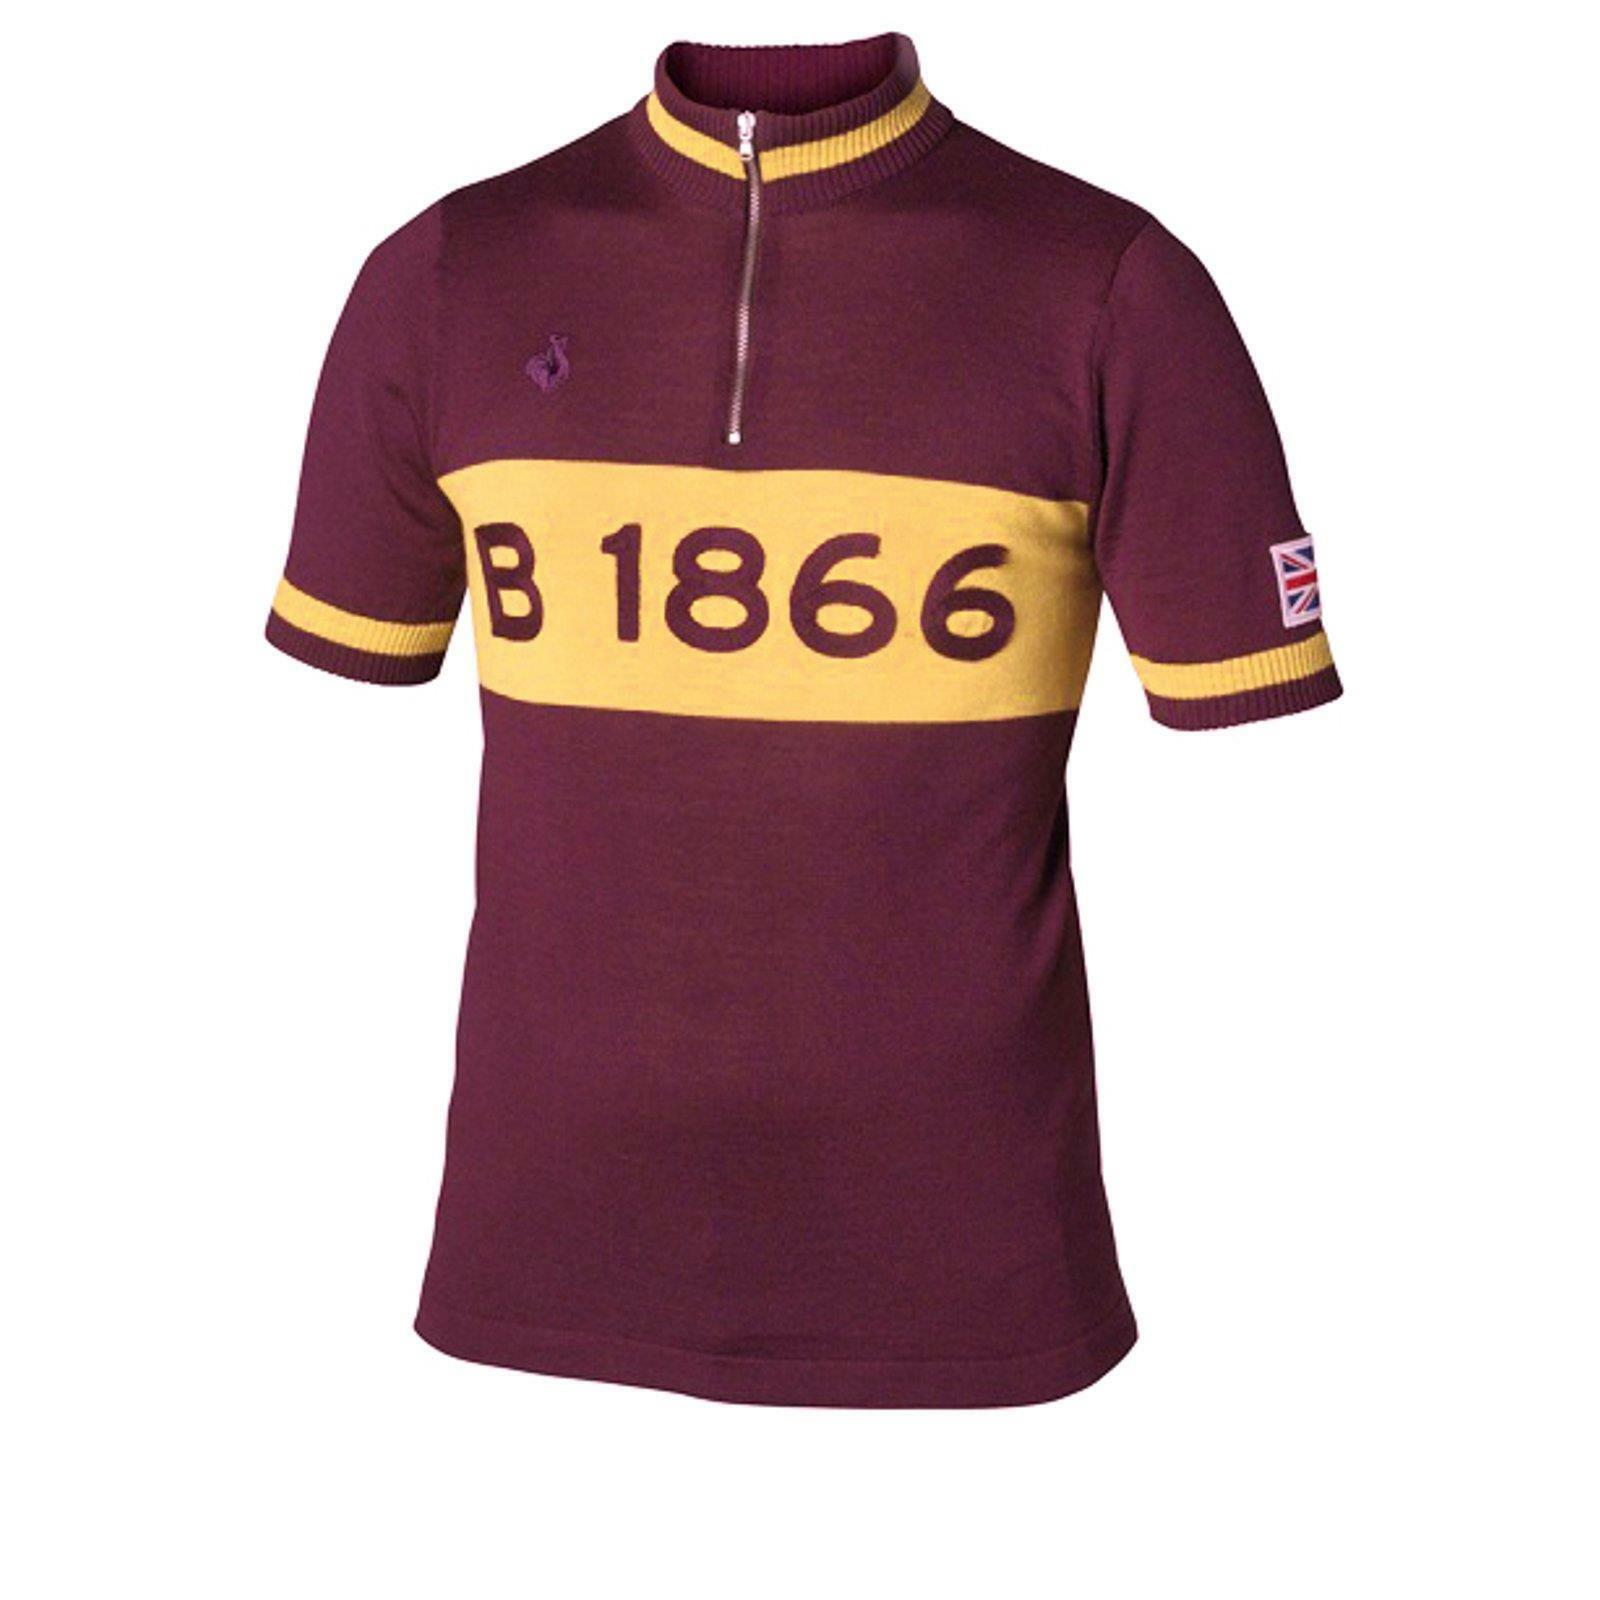 Brooks L  Eroica T-Shirt Cotton Jersey Jersey Bike Jersey B1866 Burgundy Red  store online